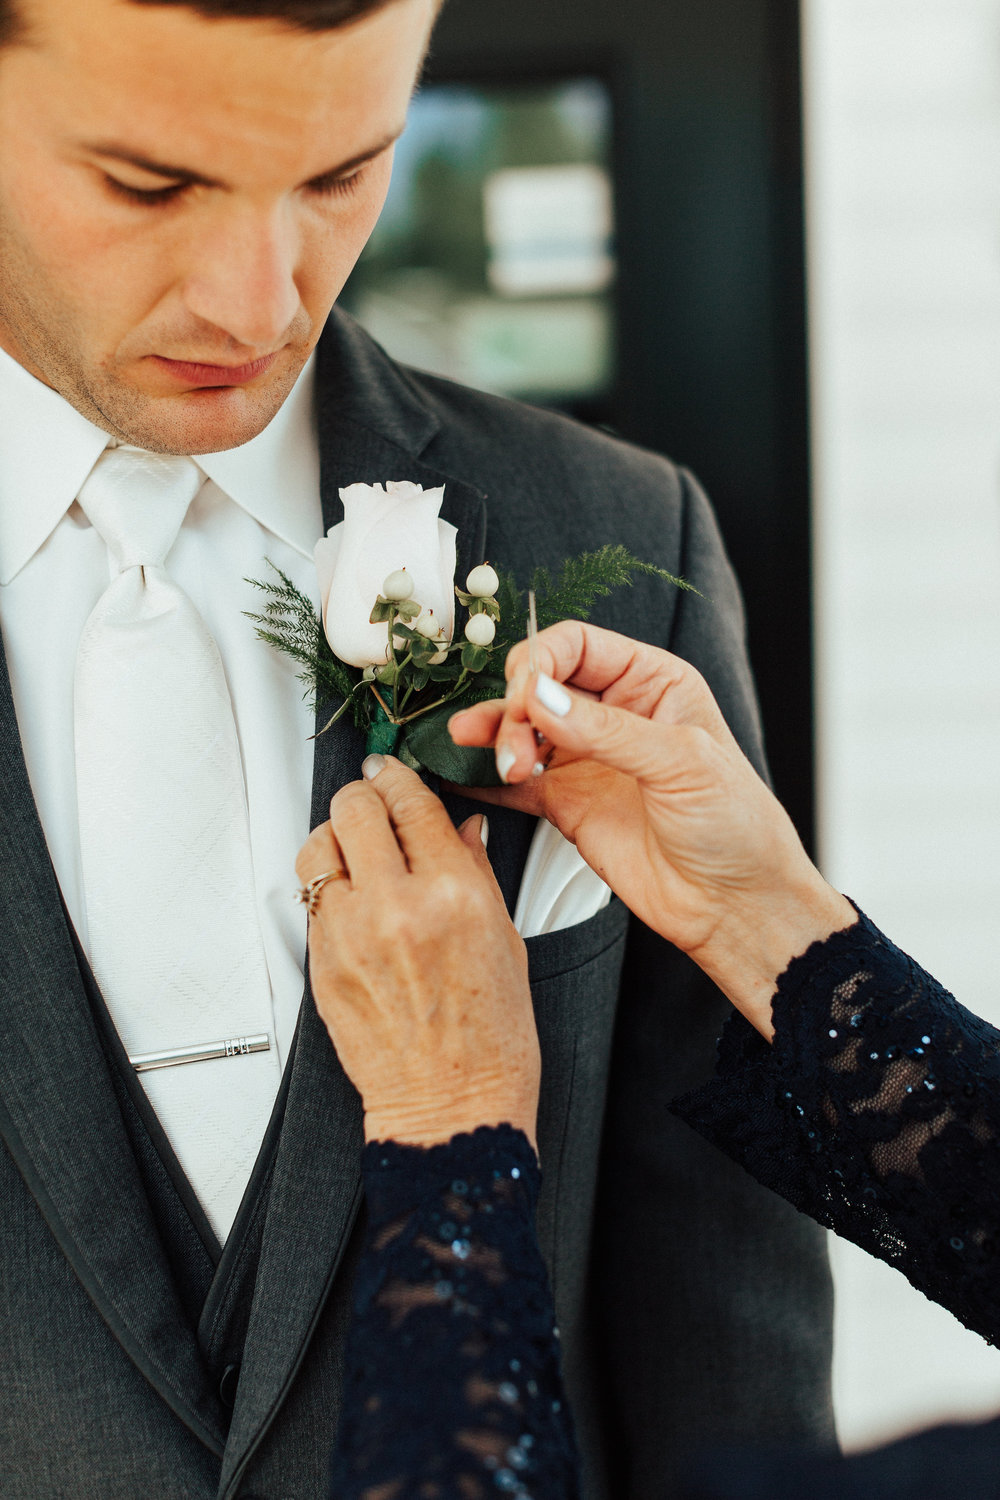 mother of the groom putting on sons bouttonniere | white rose with white hypericum berries and white tie with vest and grey suit | Janelle Elise | Megan + Corey | Furber Farm | Sixpence Events | A Vintage Touch Weddings61.jpg